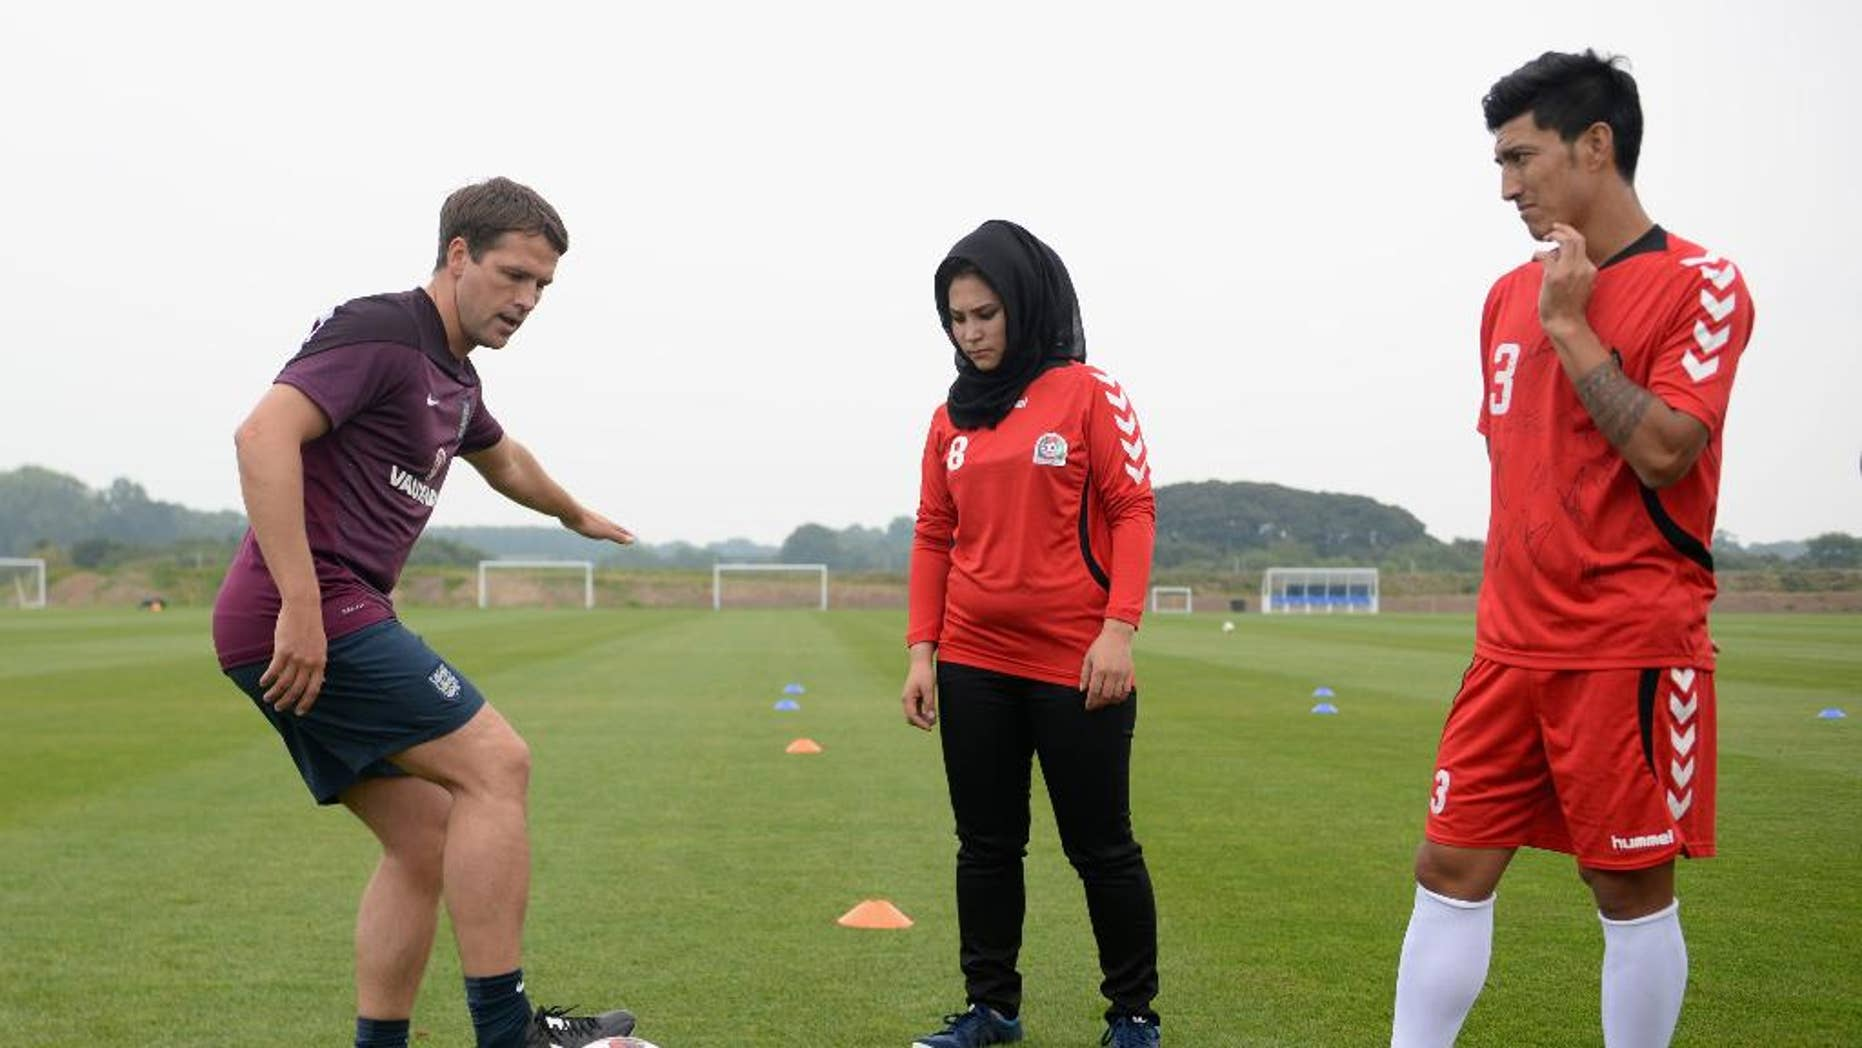 In this image supplied by the Football Association on Monady Sept. 15, 2014  former England international soccer star  Michael Owen. left,  coaches  Afghanistan captain Islamuddin Amiri , right, and an unidentified female member of the delegation from the Afghanistan FA during the  training session at St Georges Park on  Friday Sept. 5, 2014 in Burton-upon-Trent, England. The paths that took Wayne Rooney and Islamuddin Amiri into football couldn't have been more different. When a 9-year-old Rooney was catching the eye of talent spotters in Liverpool in 1995 and joining up with Premier League club Everton, Amiri was enduring hardship and horror under Taliban rule in Kabul, where Afghanistan's national stadium was used for public executions and brutal punishments.  (AP Photo/Michael Regan/The FA) NO ARCHIVE